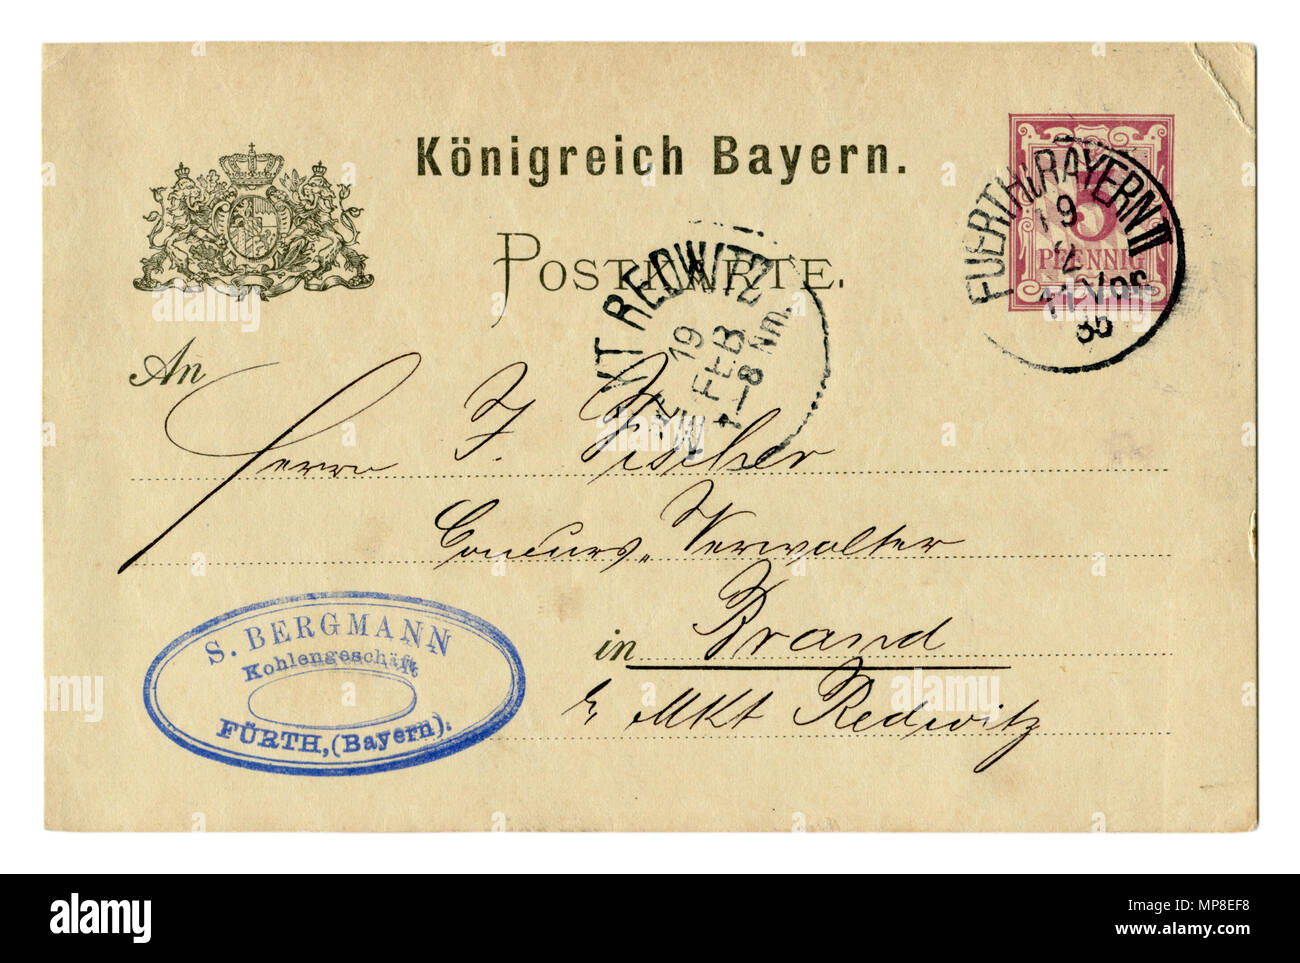 Old postcard of the late 19th century, business letter, Coat of arms, postmark, stamp. 1885, Kingdom of Bavaria, German Empire, Germany - Stock Image